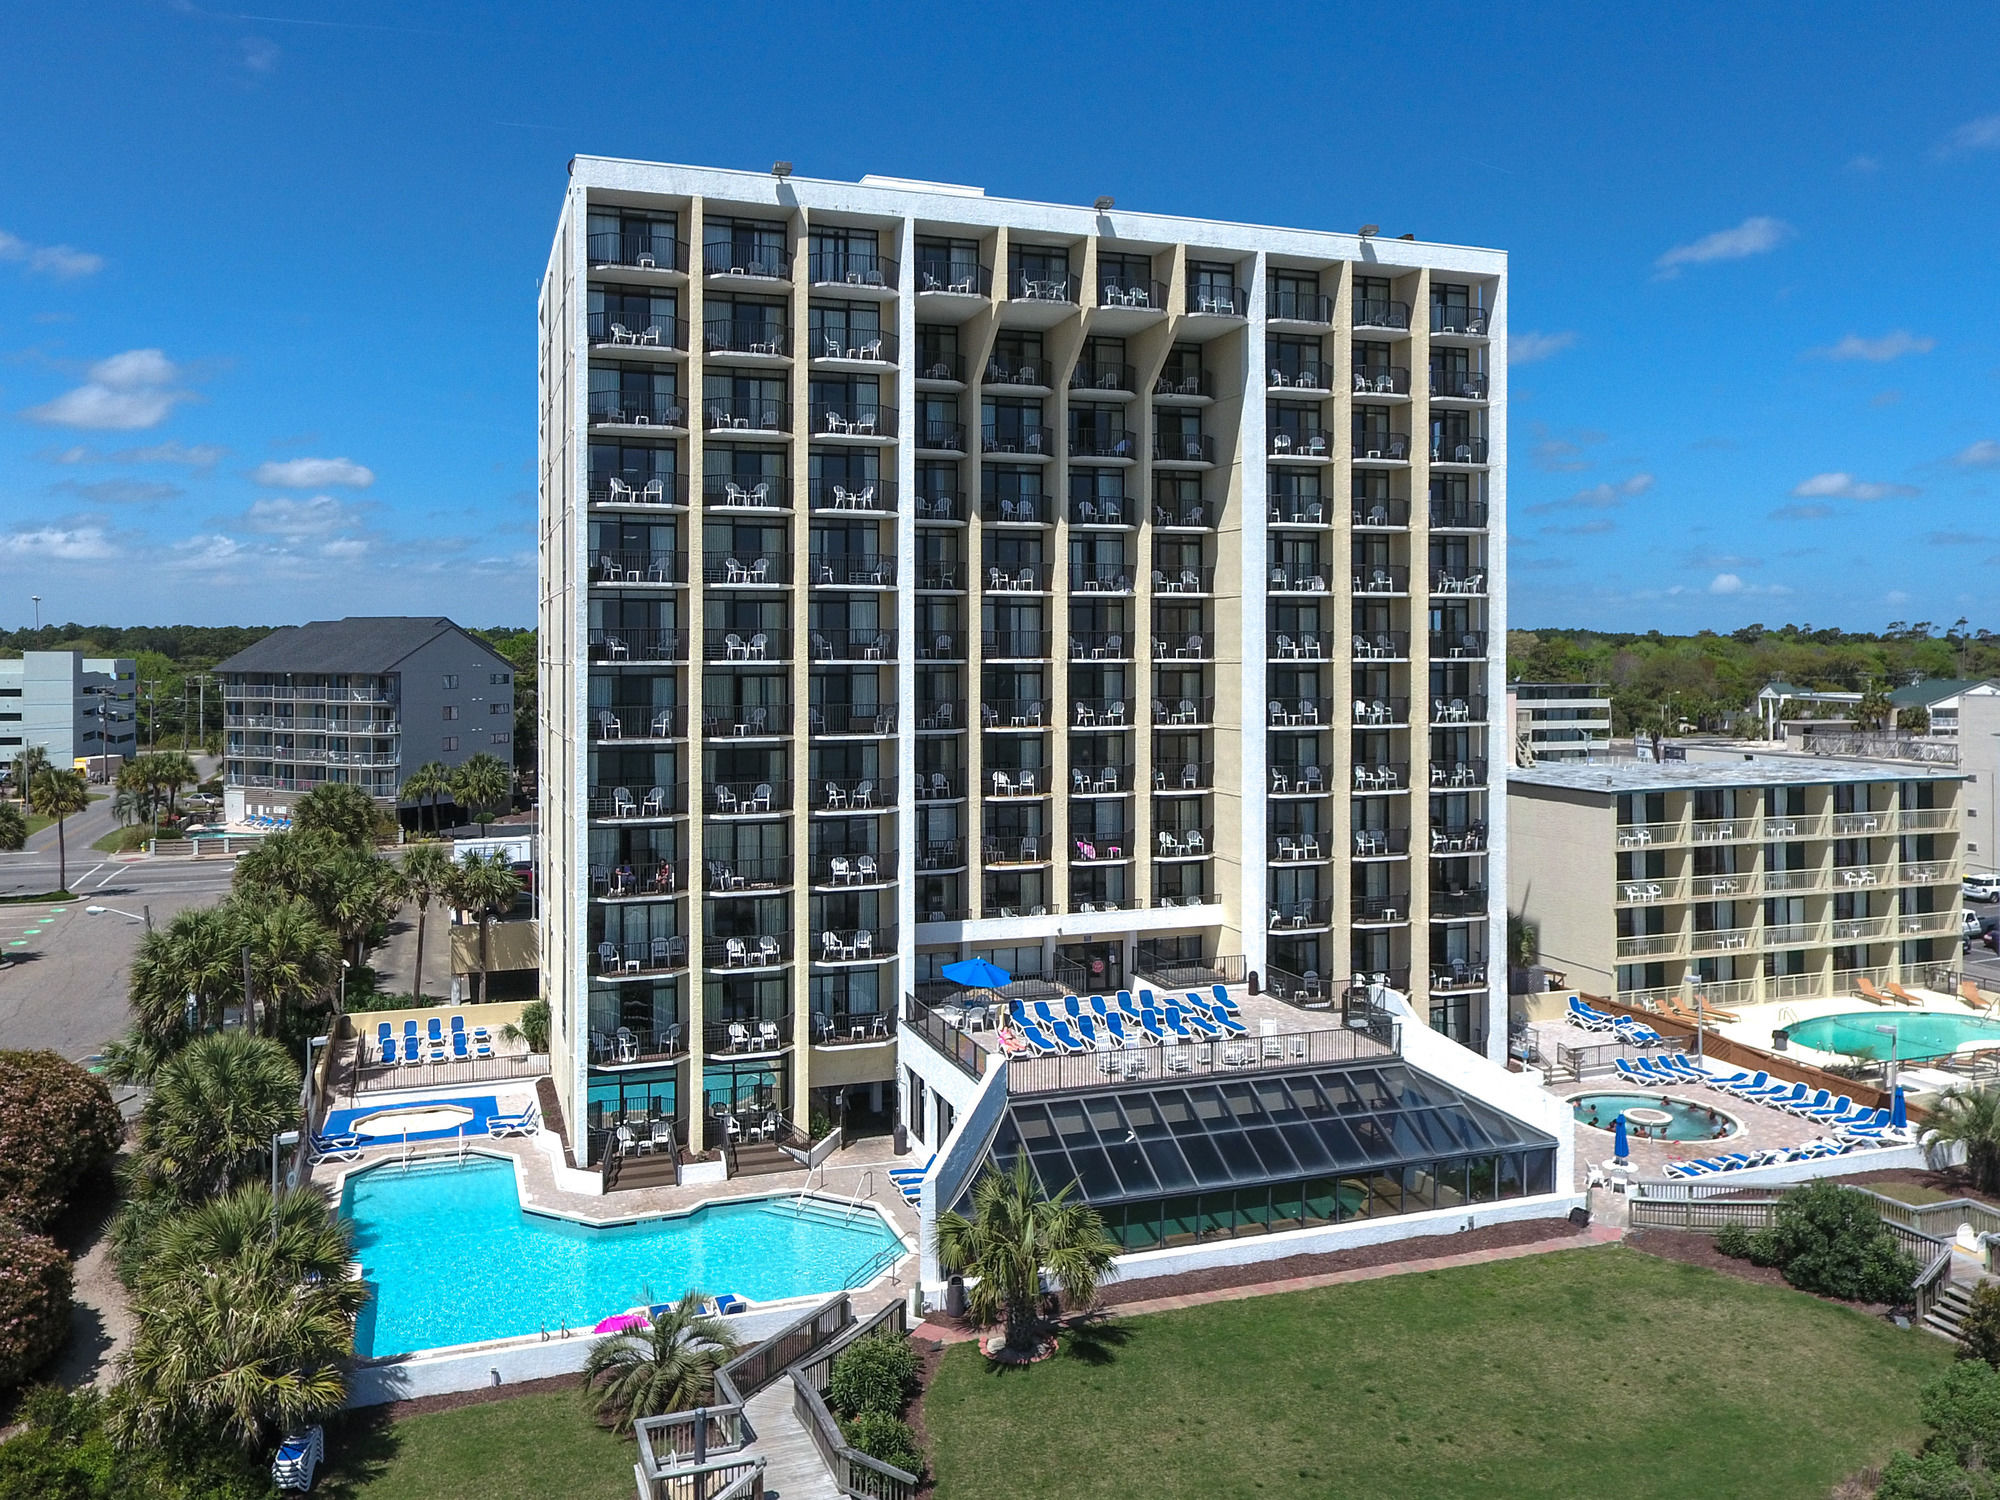 Hotel deals in Myrtle Beach, SC: Discover the best hotels in Myrtle Beach. Groupon. Search Groupon Zip Code, Hertz Coupons hereifilessl.ga Coupons Budget Rent a Car Coupons Sixt Car Rental Coupons Alamo Rent A Car Coupons HomeAway Coupons Popular ones include Myrtle Waves—20 acres of slides, raft rides.